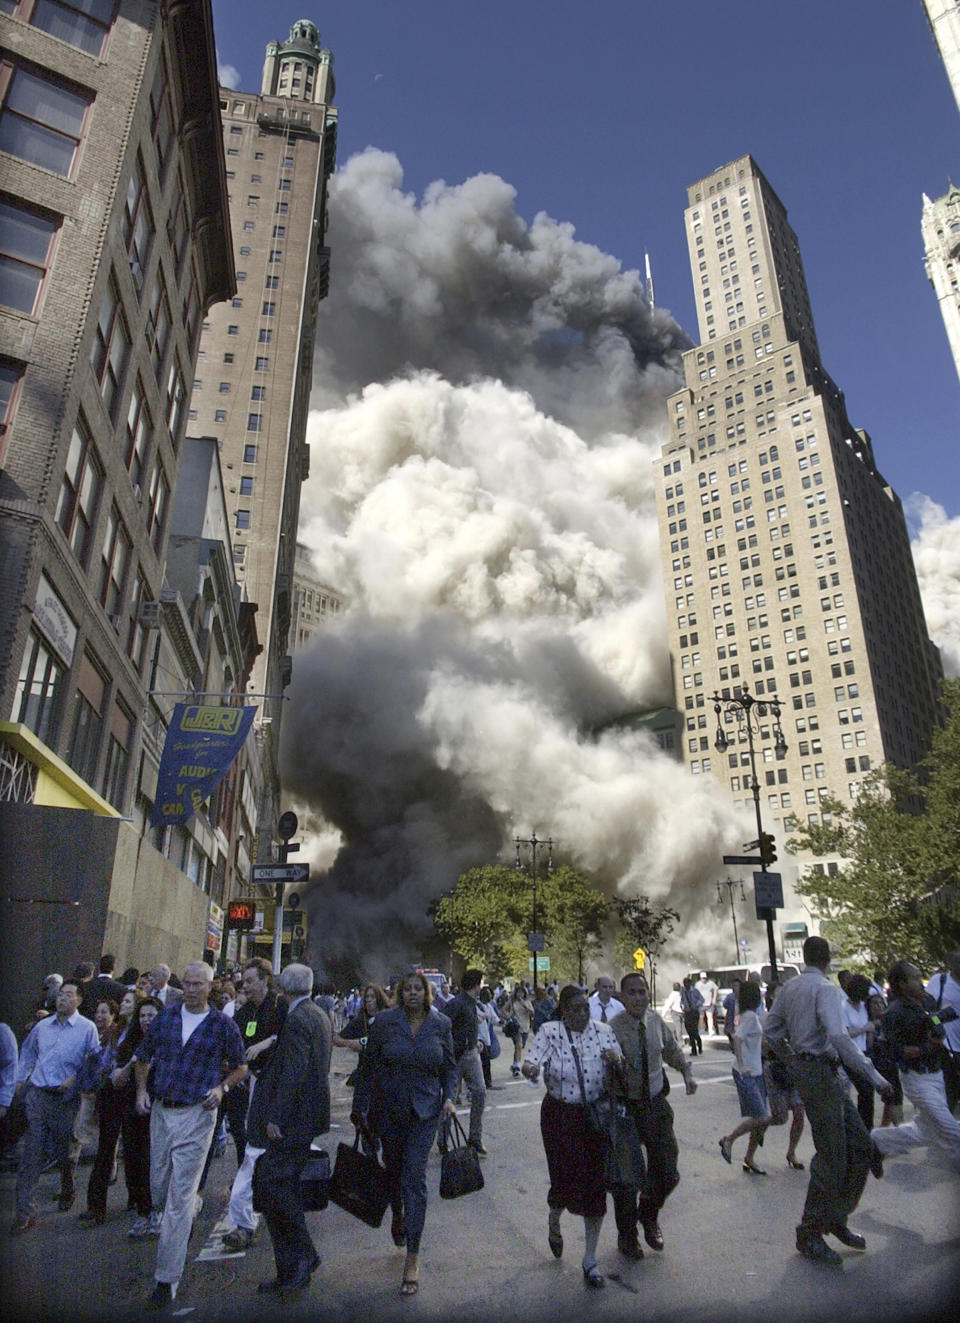 FILE - People flee the falling South Tower of the World Trade Center on Tuesday, September 11, 2001. On that day, Howie Rumberg, working the overnight in AP Sports, came up out of a subway and found himself in the middle of chaos. (AP Photo/Amy Sancetta)